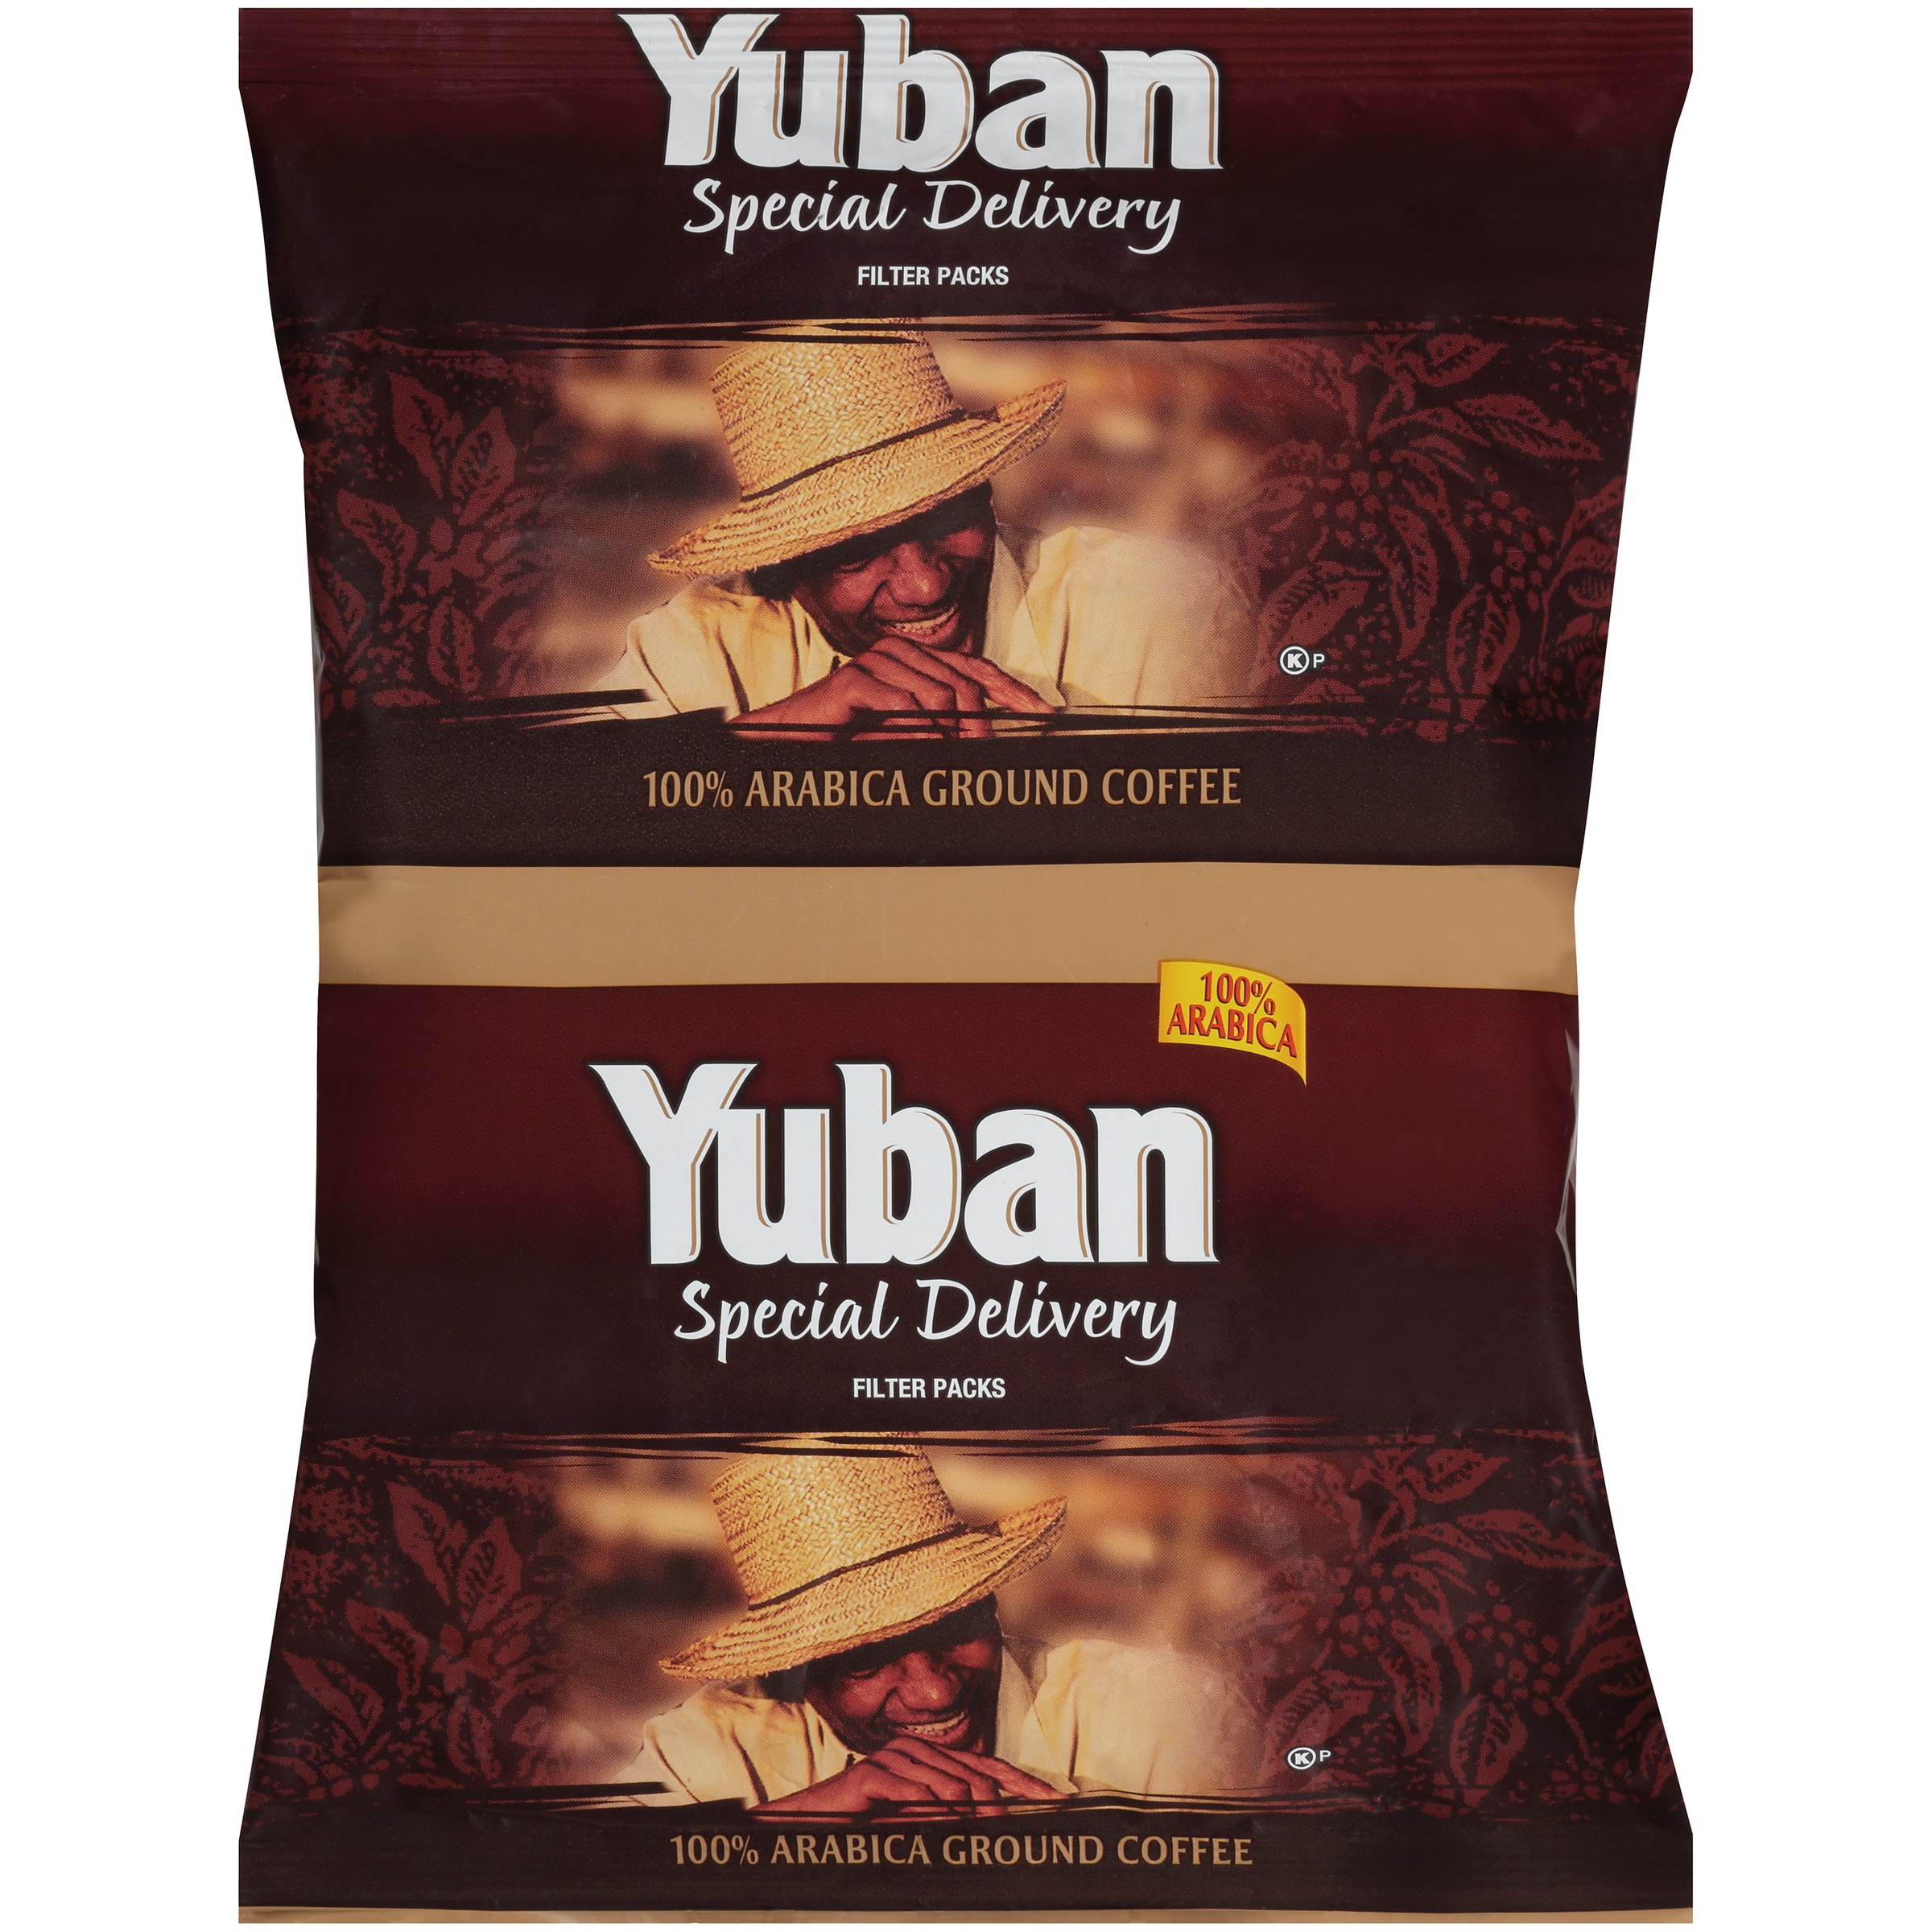 Yuban Special Delivery 100% Arabica Ground Coffee Filter Packs 6-7.2 oz. Bags